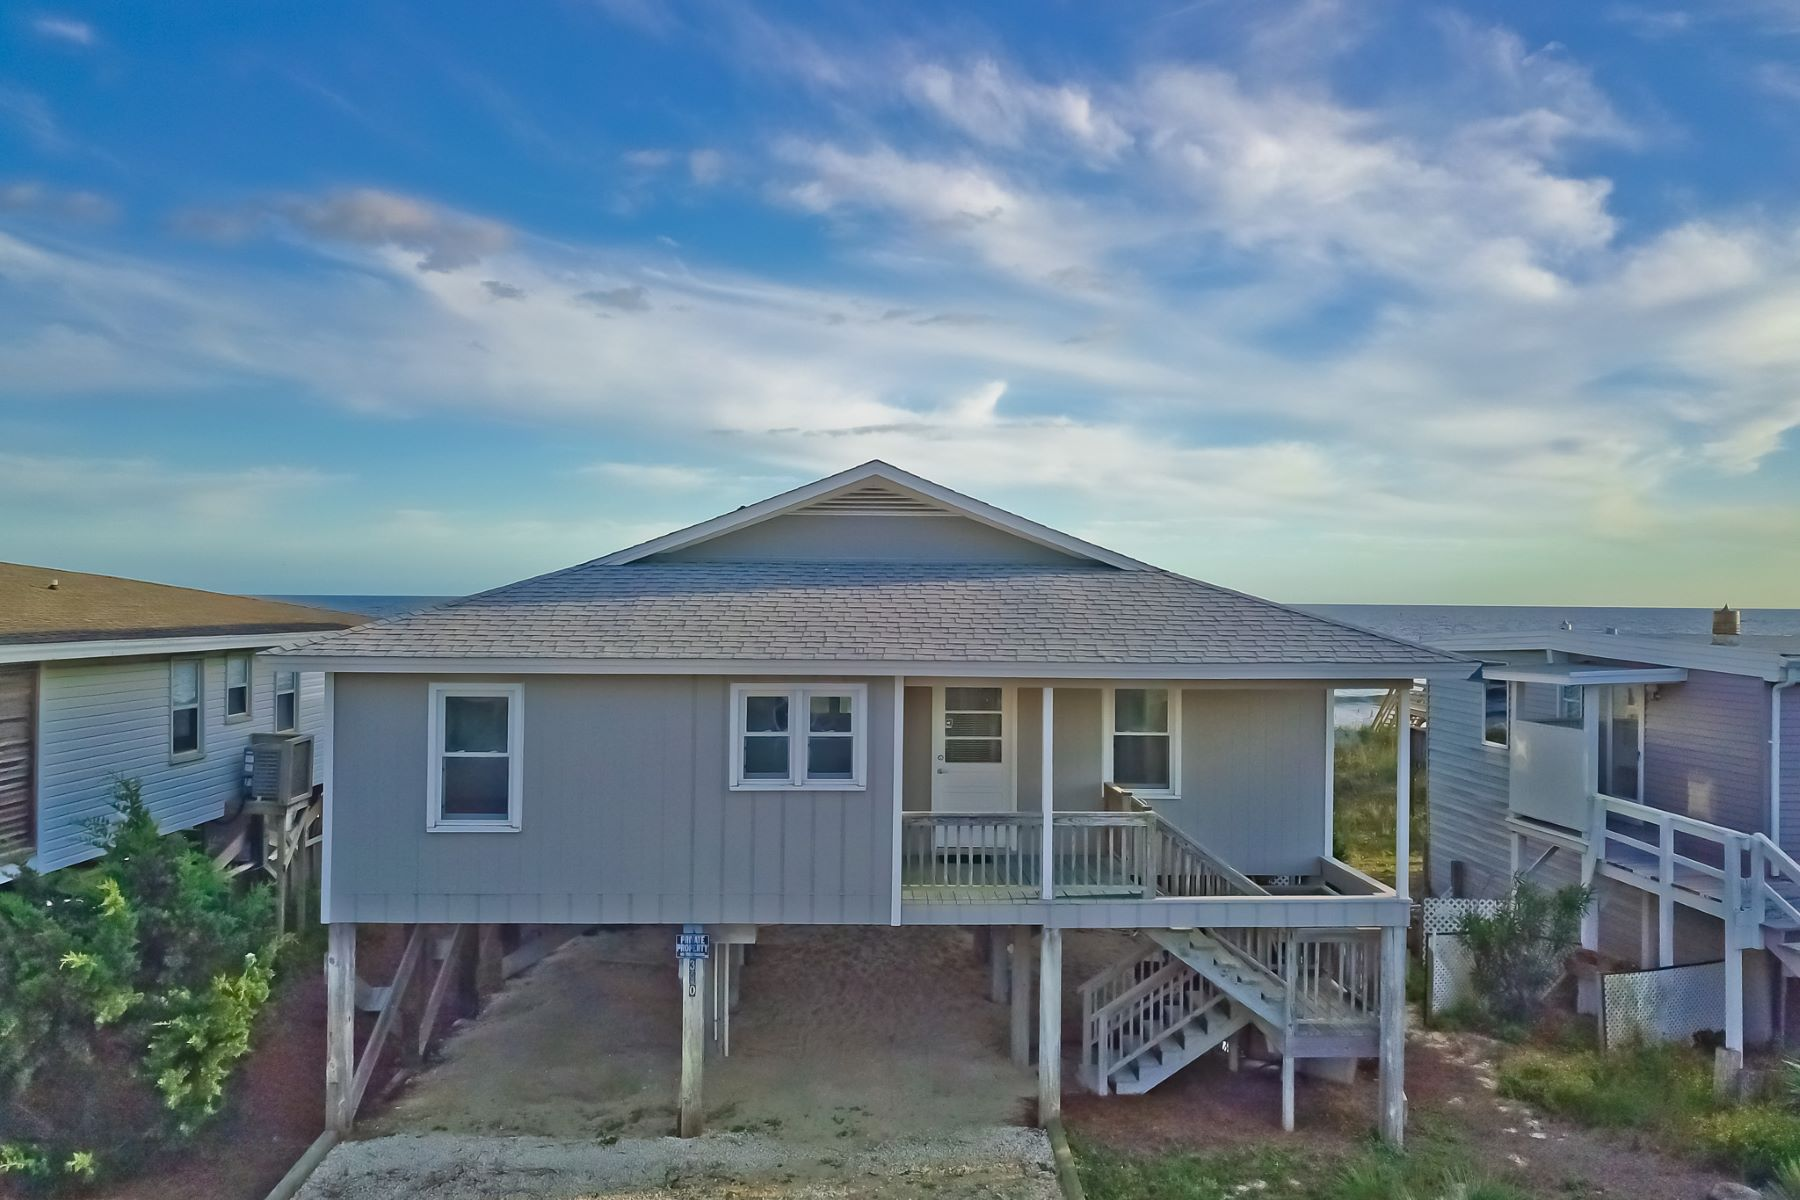 Single Family Home for Sale at Picturesque Oceantfront Sunrises in Ocean Isle Beach 390 E First St, Ocean Isle Beach, North Carolina, 28469 United States